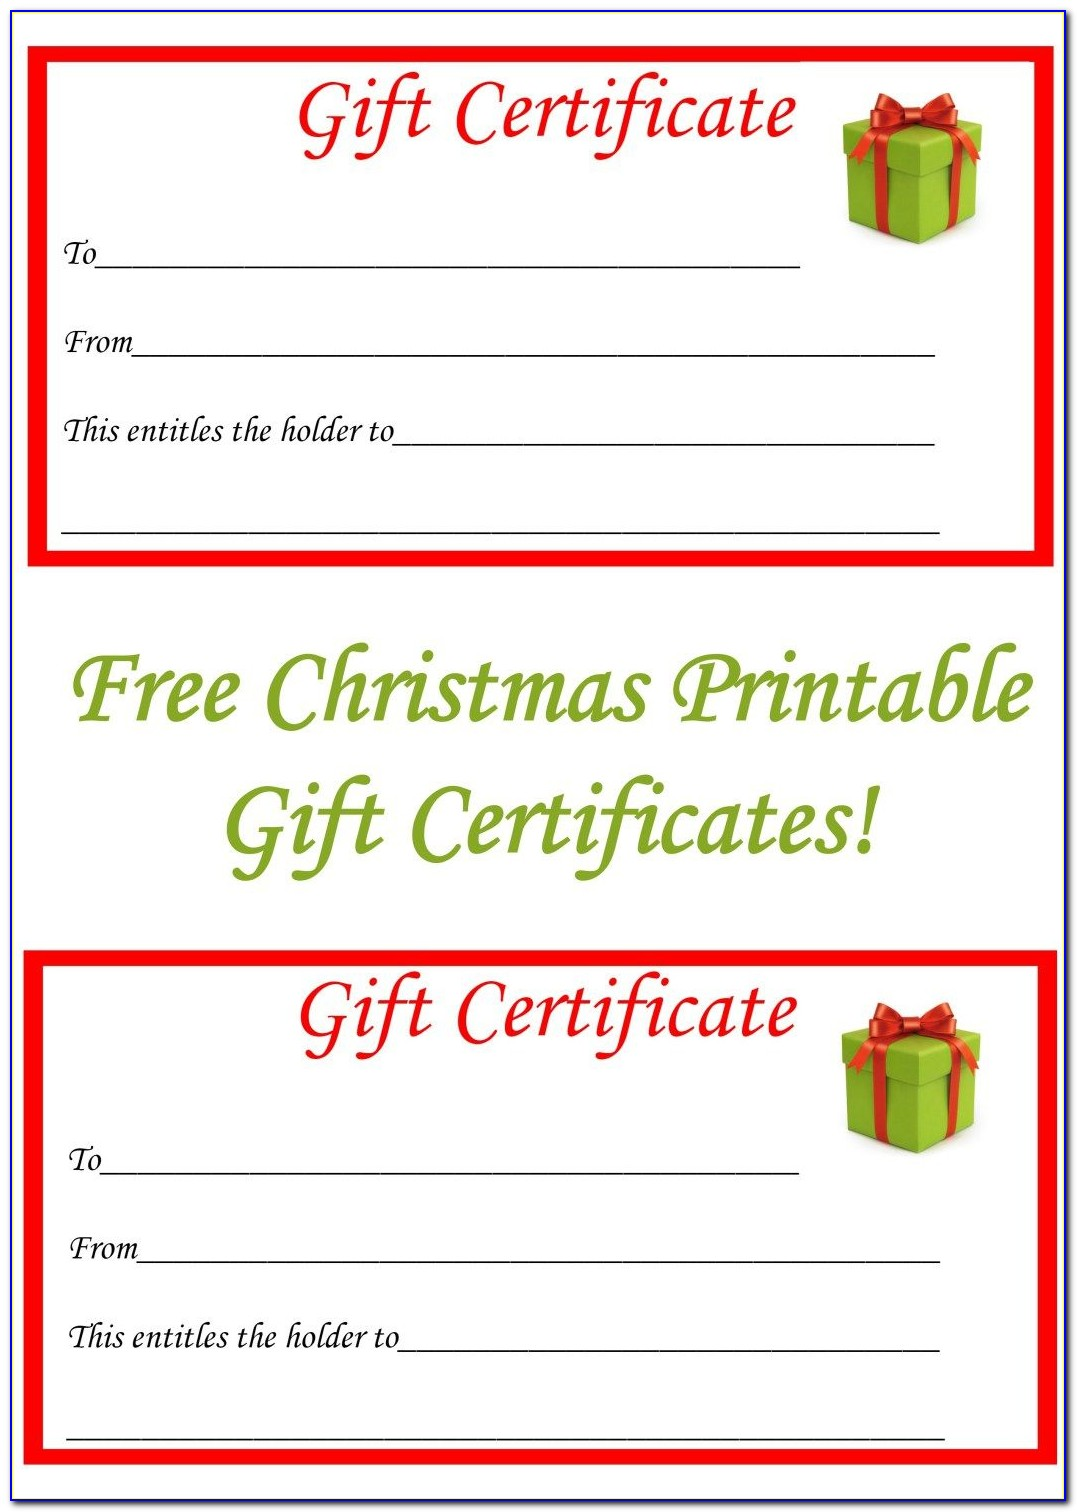 Online Printable Gift Certificate Template